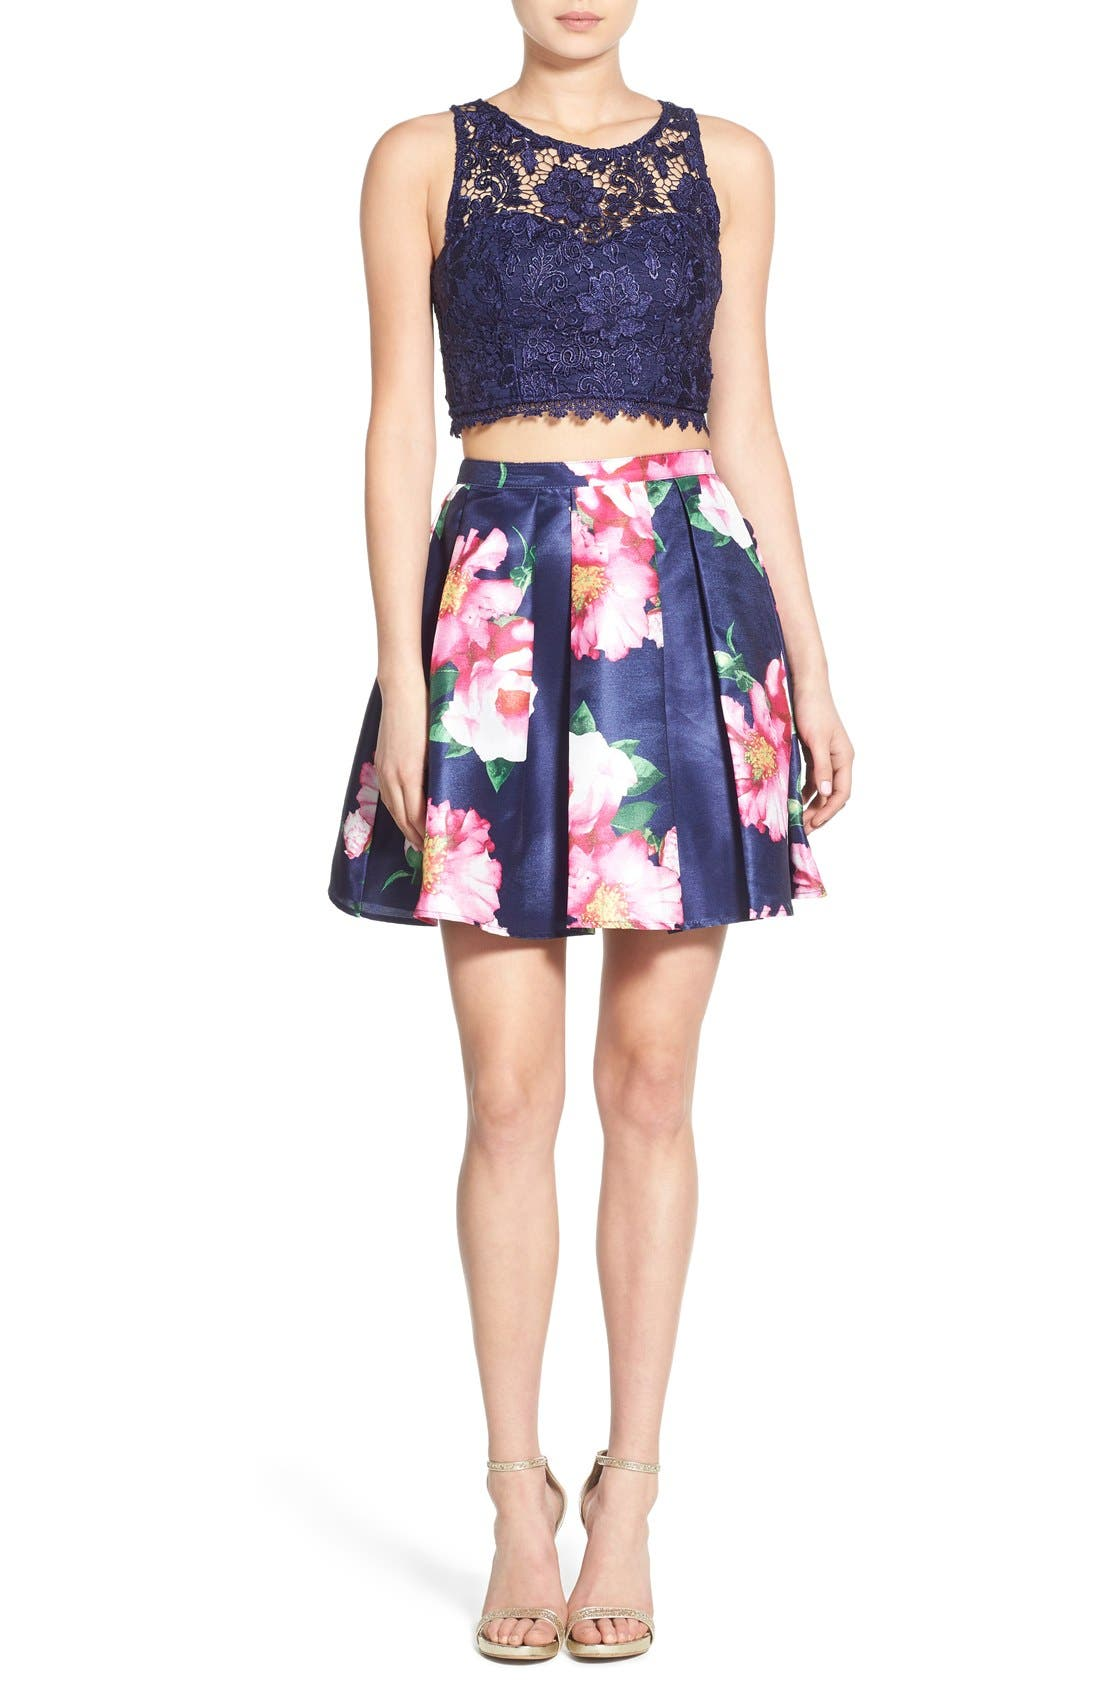 Alternate Image 1 Selected - Sequin Hearts Floral Print Lace Two-Piece Dress